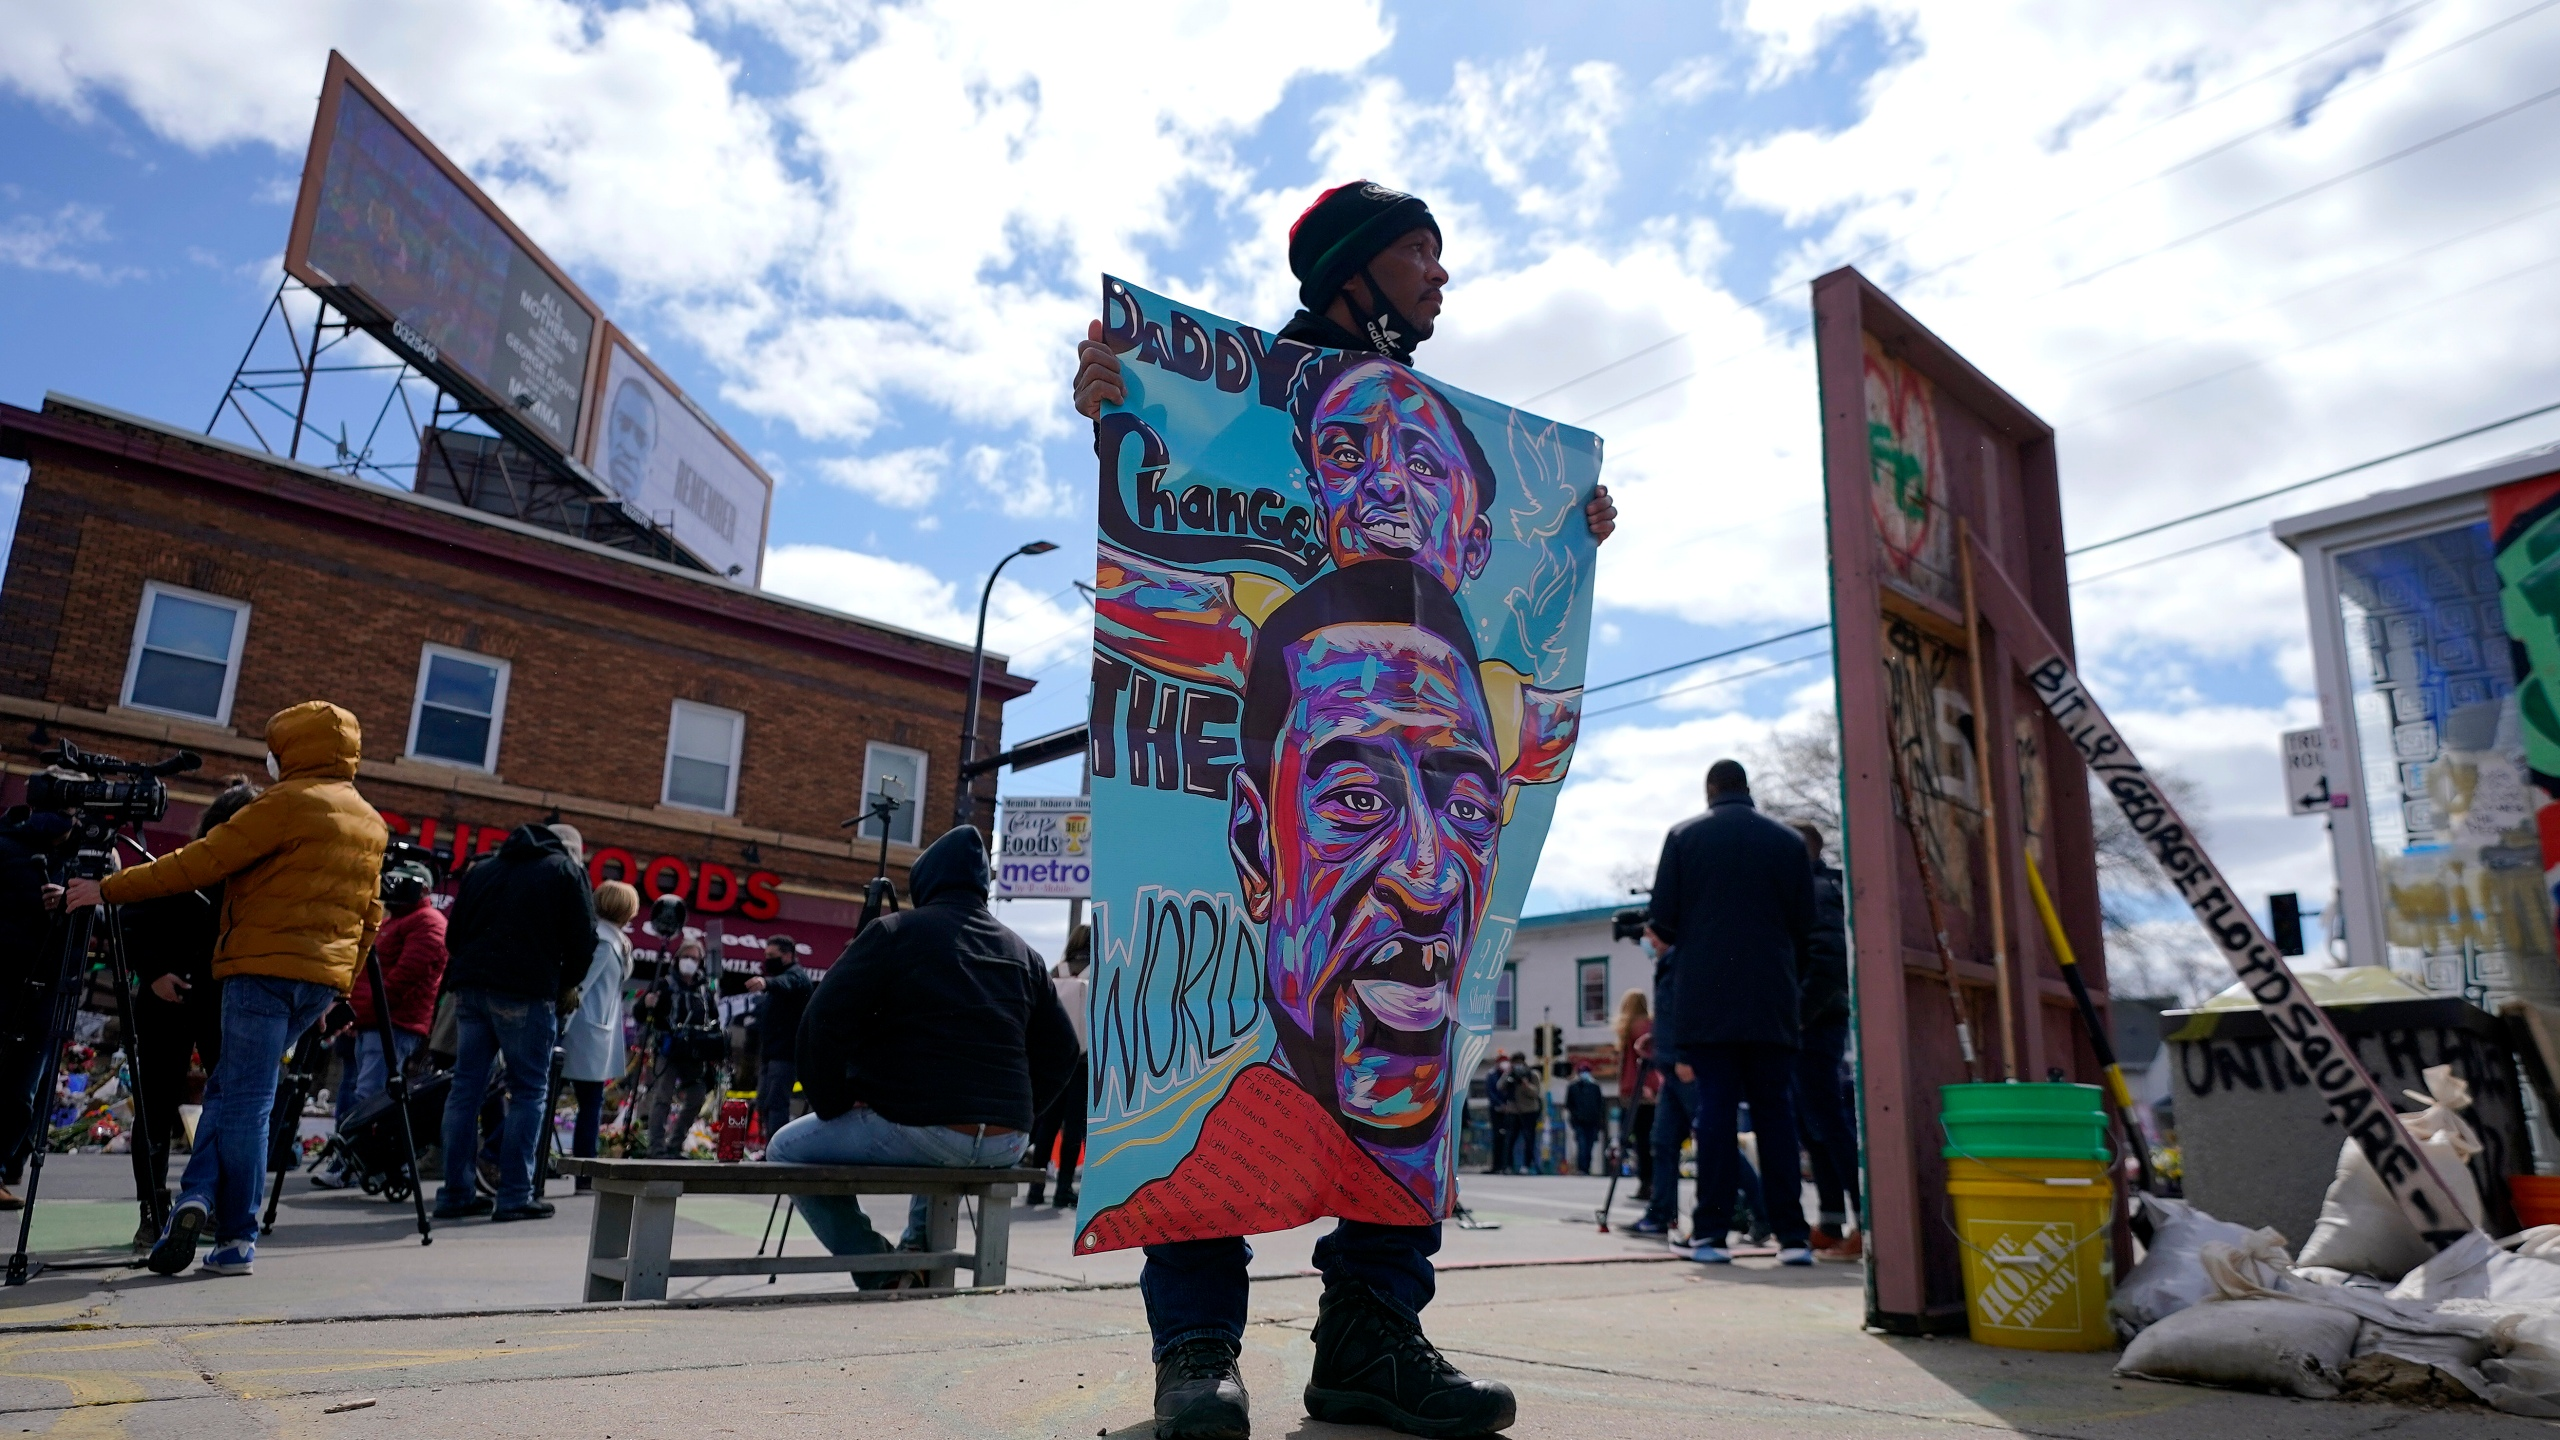 A man holds a sign at George Floyd Square, Wednesday, April 21, 2021, in Minneapolis, a day after former Minneapolis police Officer Derek Chauvin was convicted on all counts for the 2020 death of Floyd. (AP Photo/Julio Cortez)